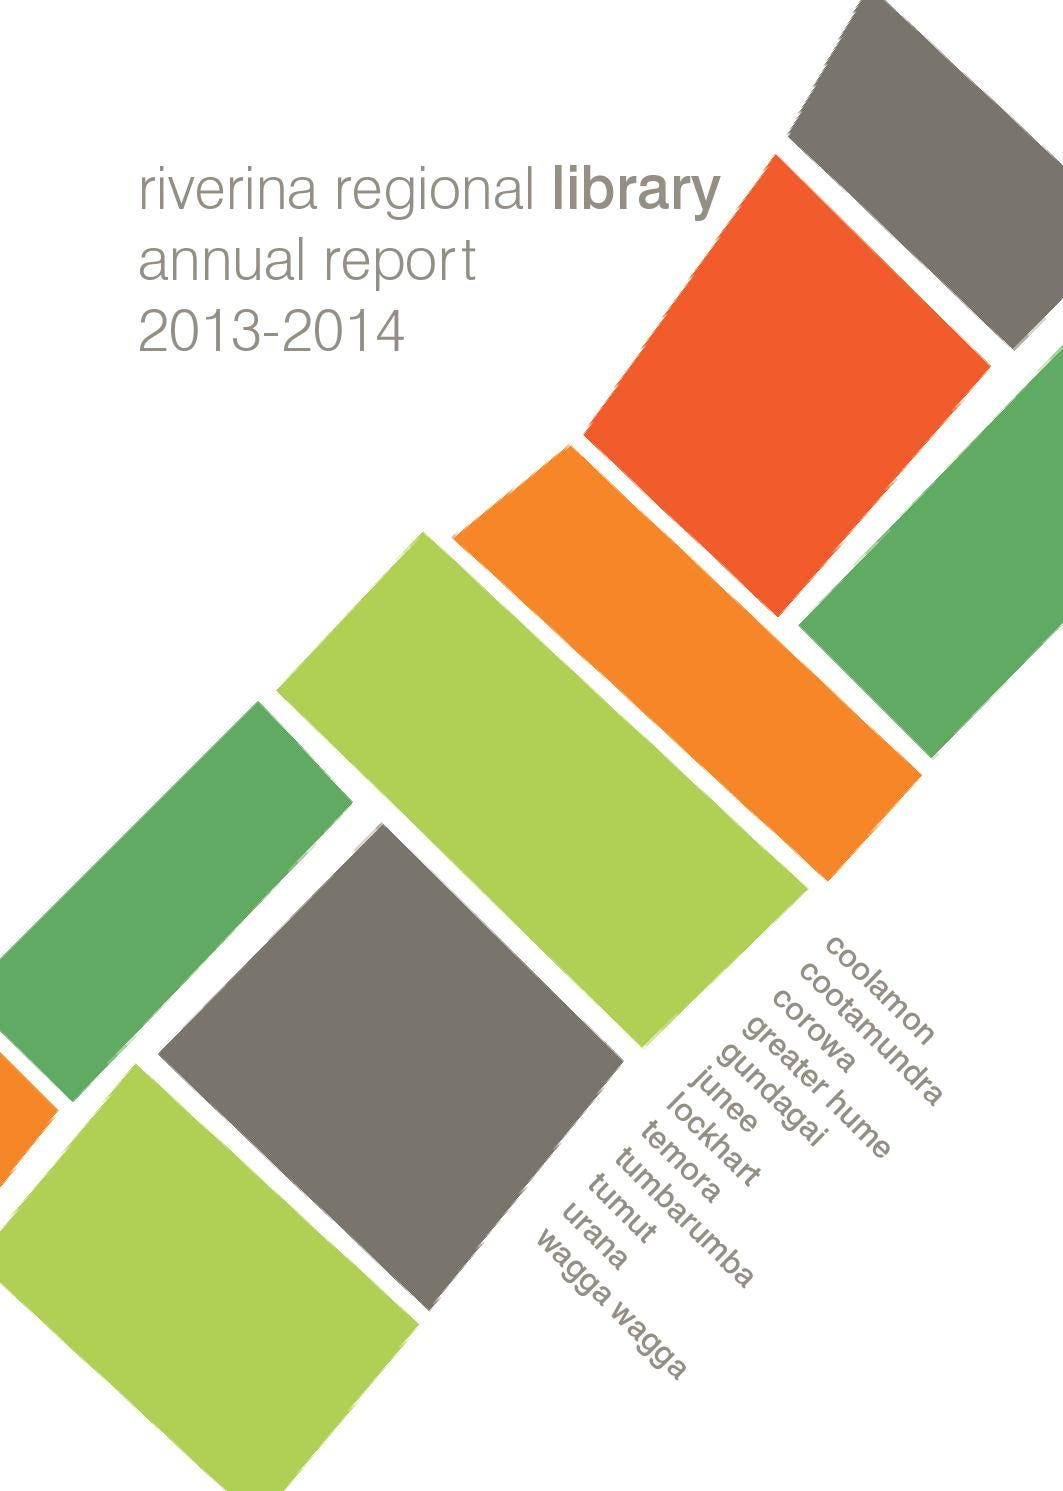 Riverina Regional Library Annual Report 2013-2014 by Cynthia Price